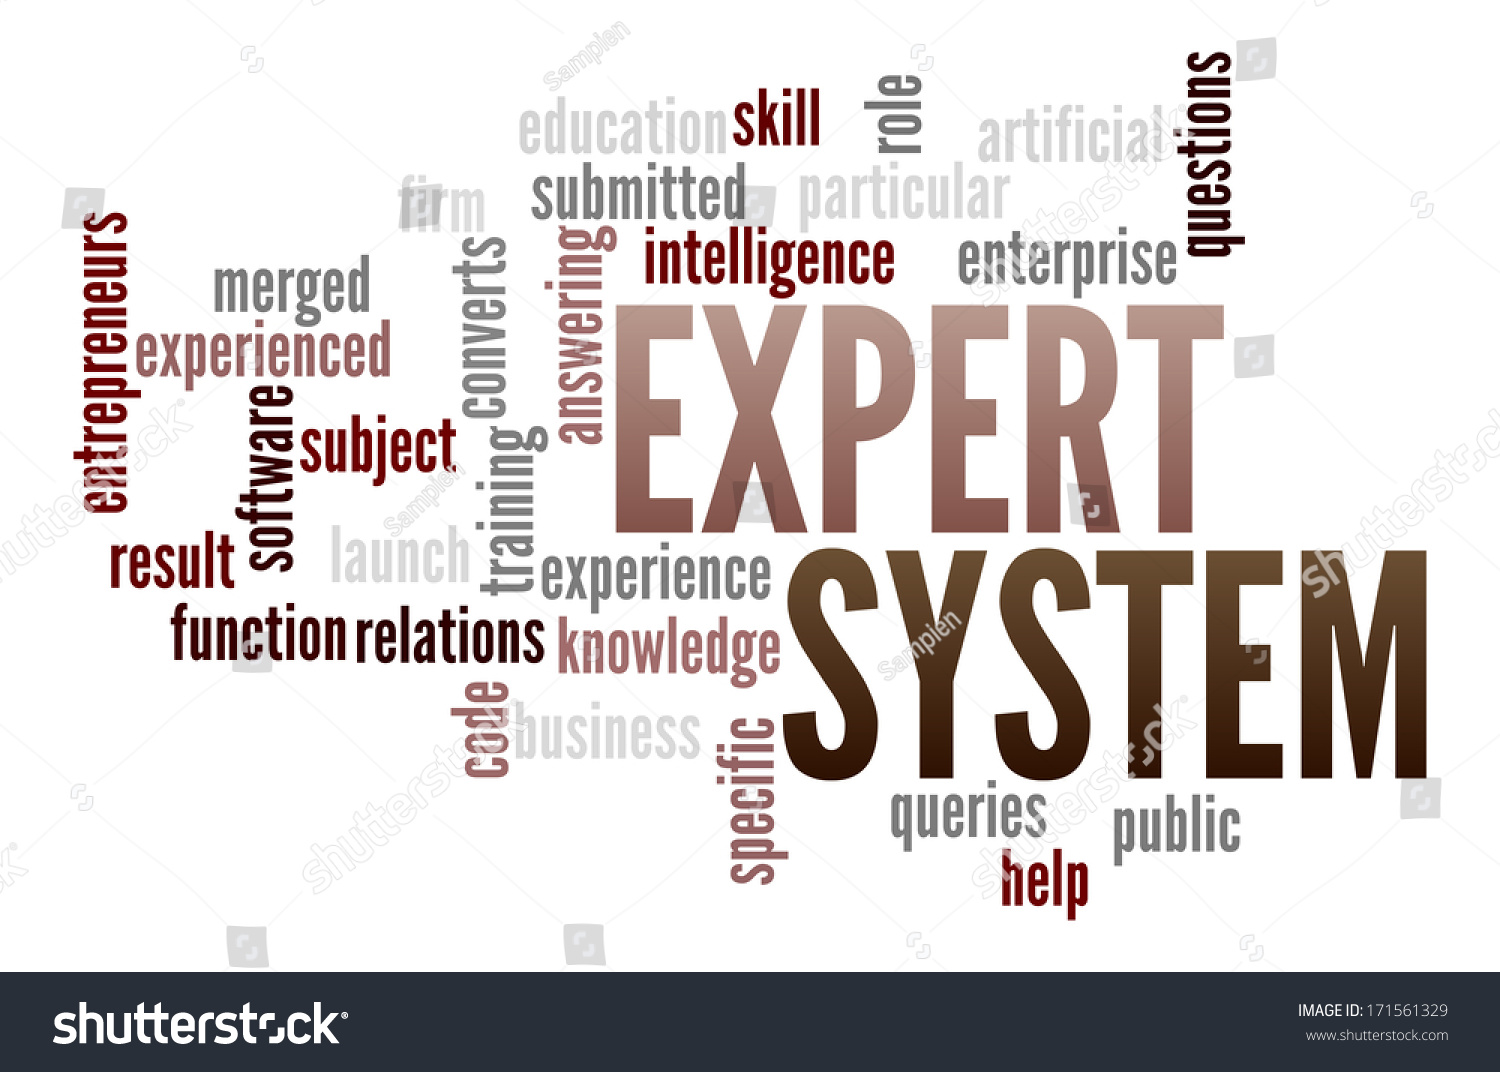 expert system Chapter 11 expert systems and applied artificial intelligence 111 what is artificial intelligence the field of artificial intelligence (ai) is concerned with methods of developing systems that display aspects of intelligent behaviour.